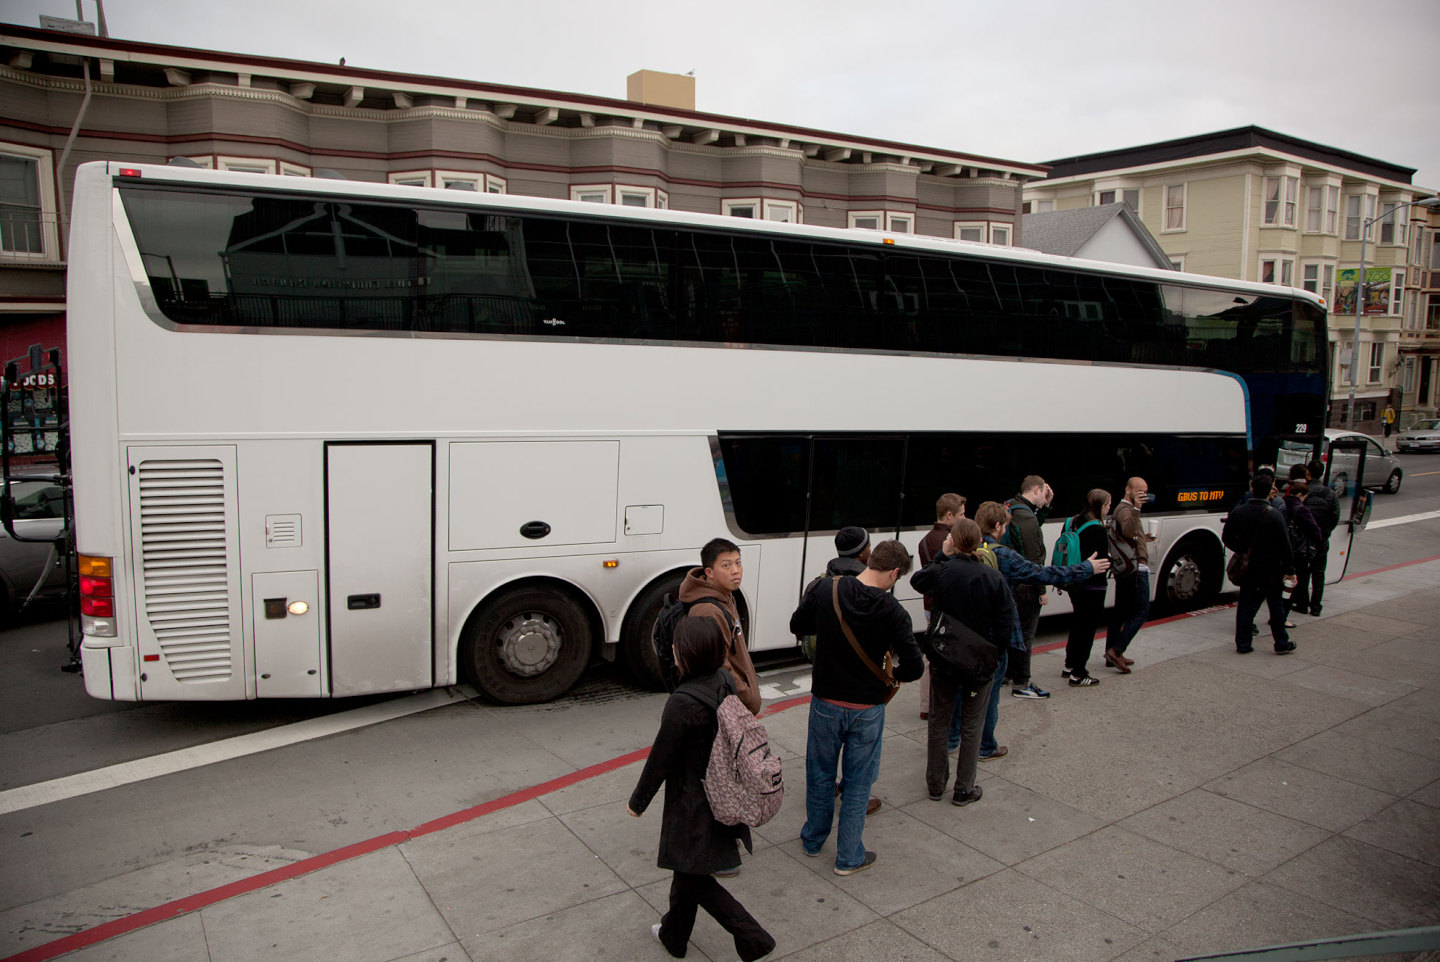 Workers board a private bus at a Muni bus stop at 24th and Valencia streets in the Mission District. (Mark Andrew Boyer/KQED)